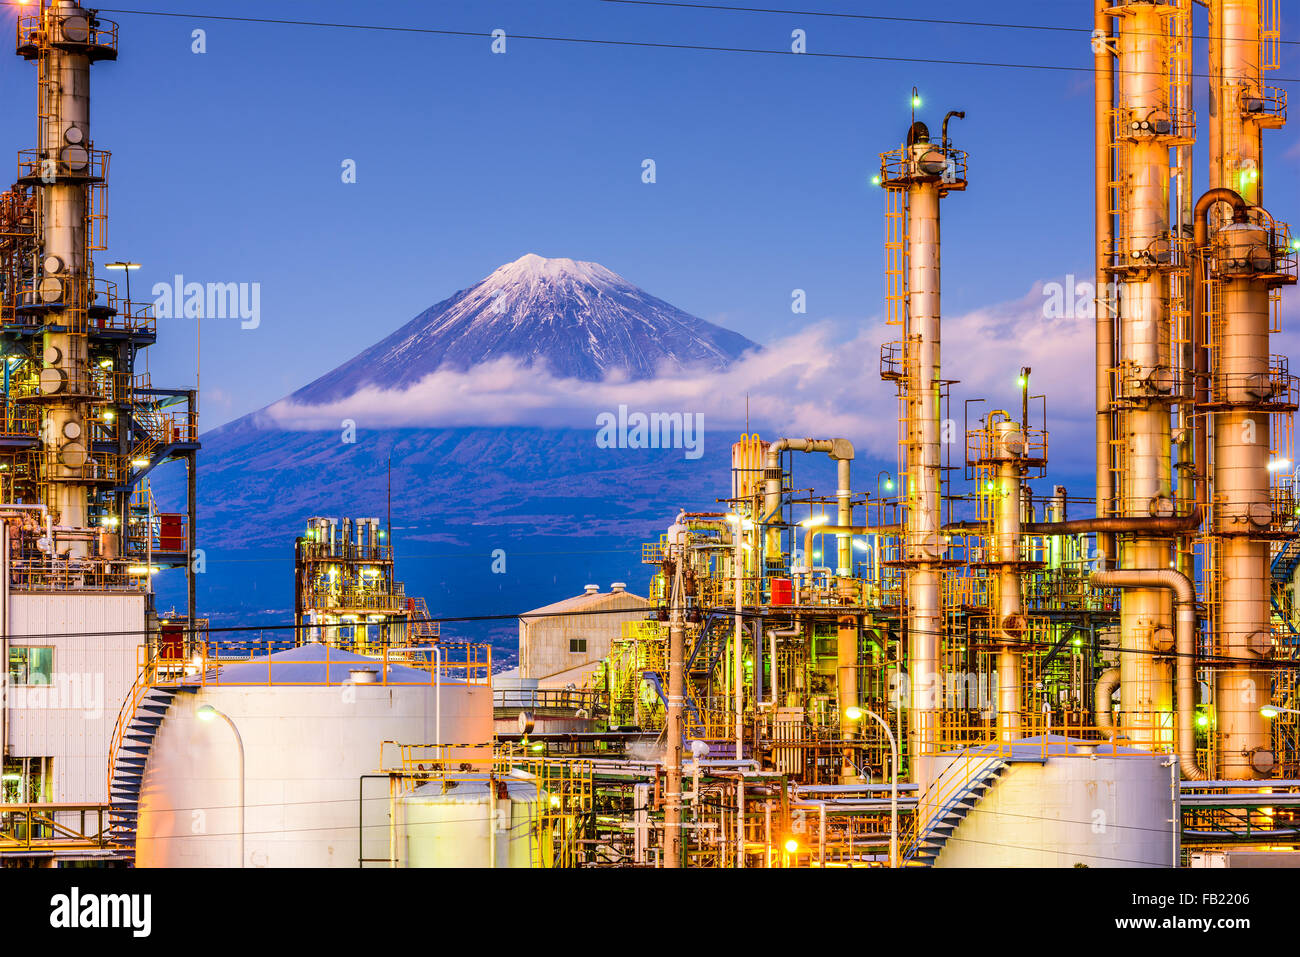 Mt. Fuji, Japan viewed from behind factories. - Stock Image